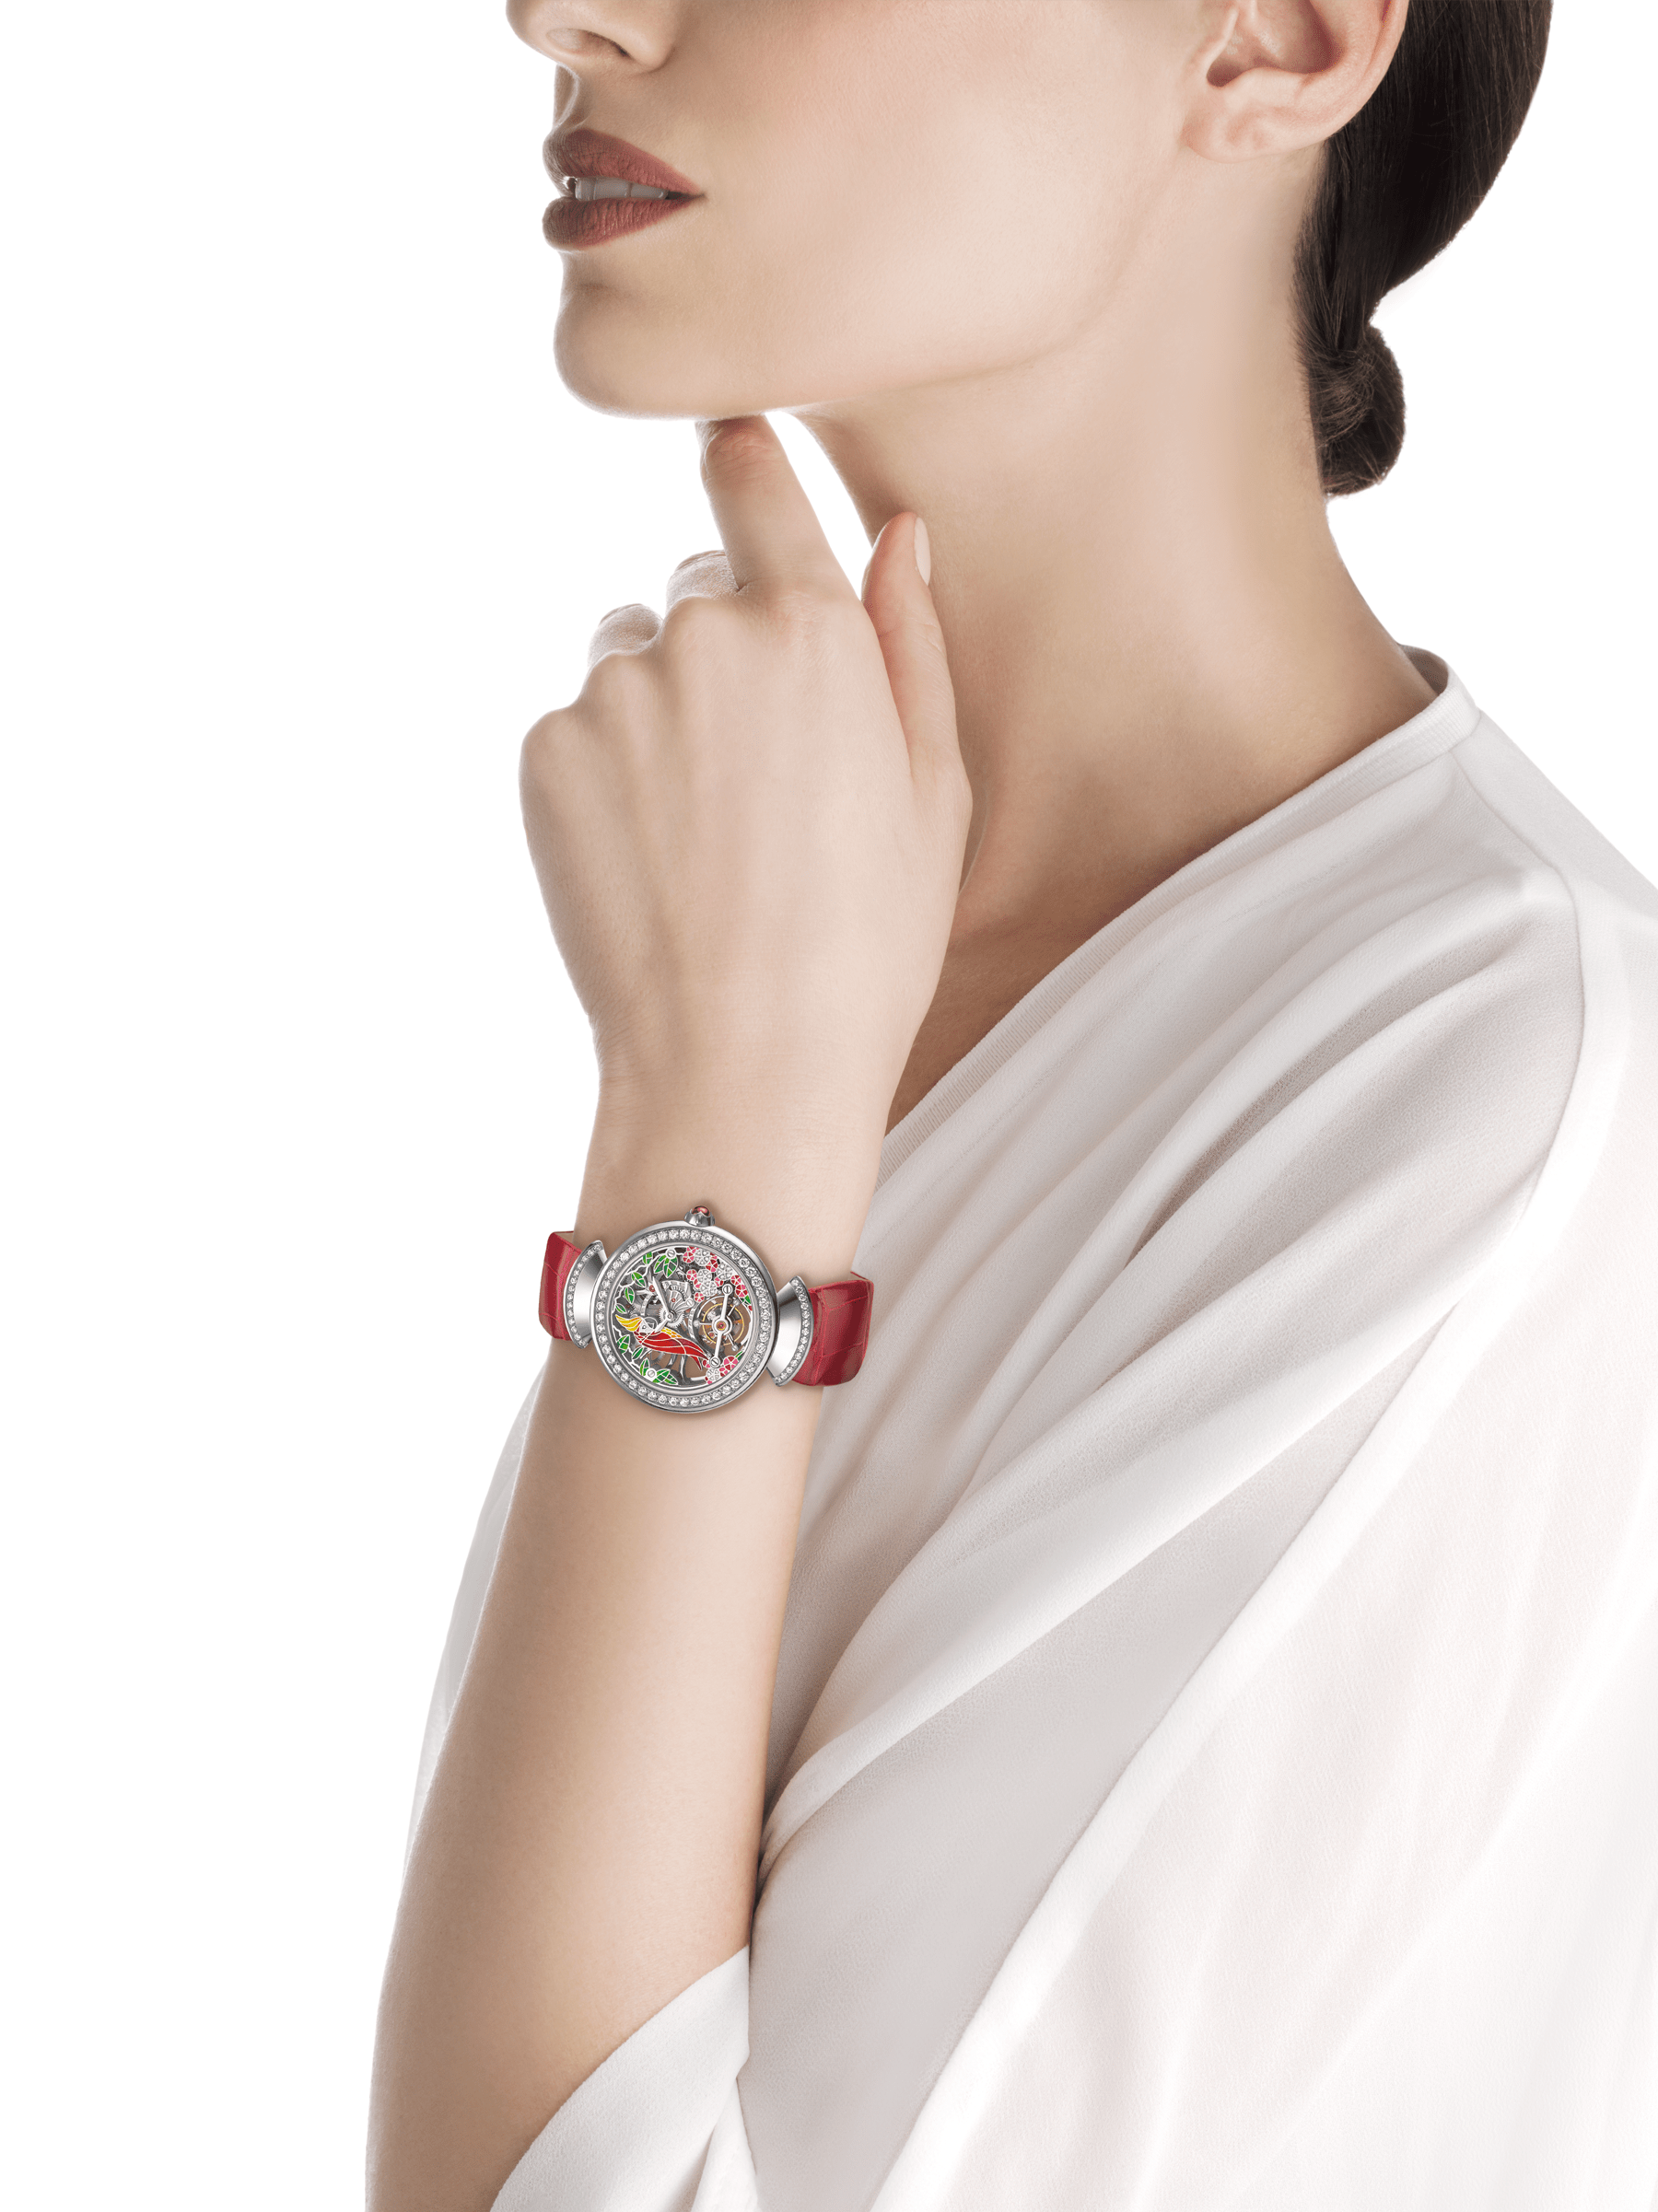 DIVAS' DREAM watch with 18kt white gold mechanical manufacture skeletonized movement and tourbillon. 18 kt white gold case set with brilliant-cut diamonds, dial with hand painted parrot, flowers and leaves set with diamonds and red alligator bracelet 102517 image 3